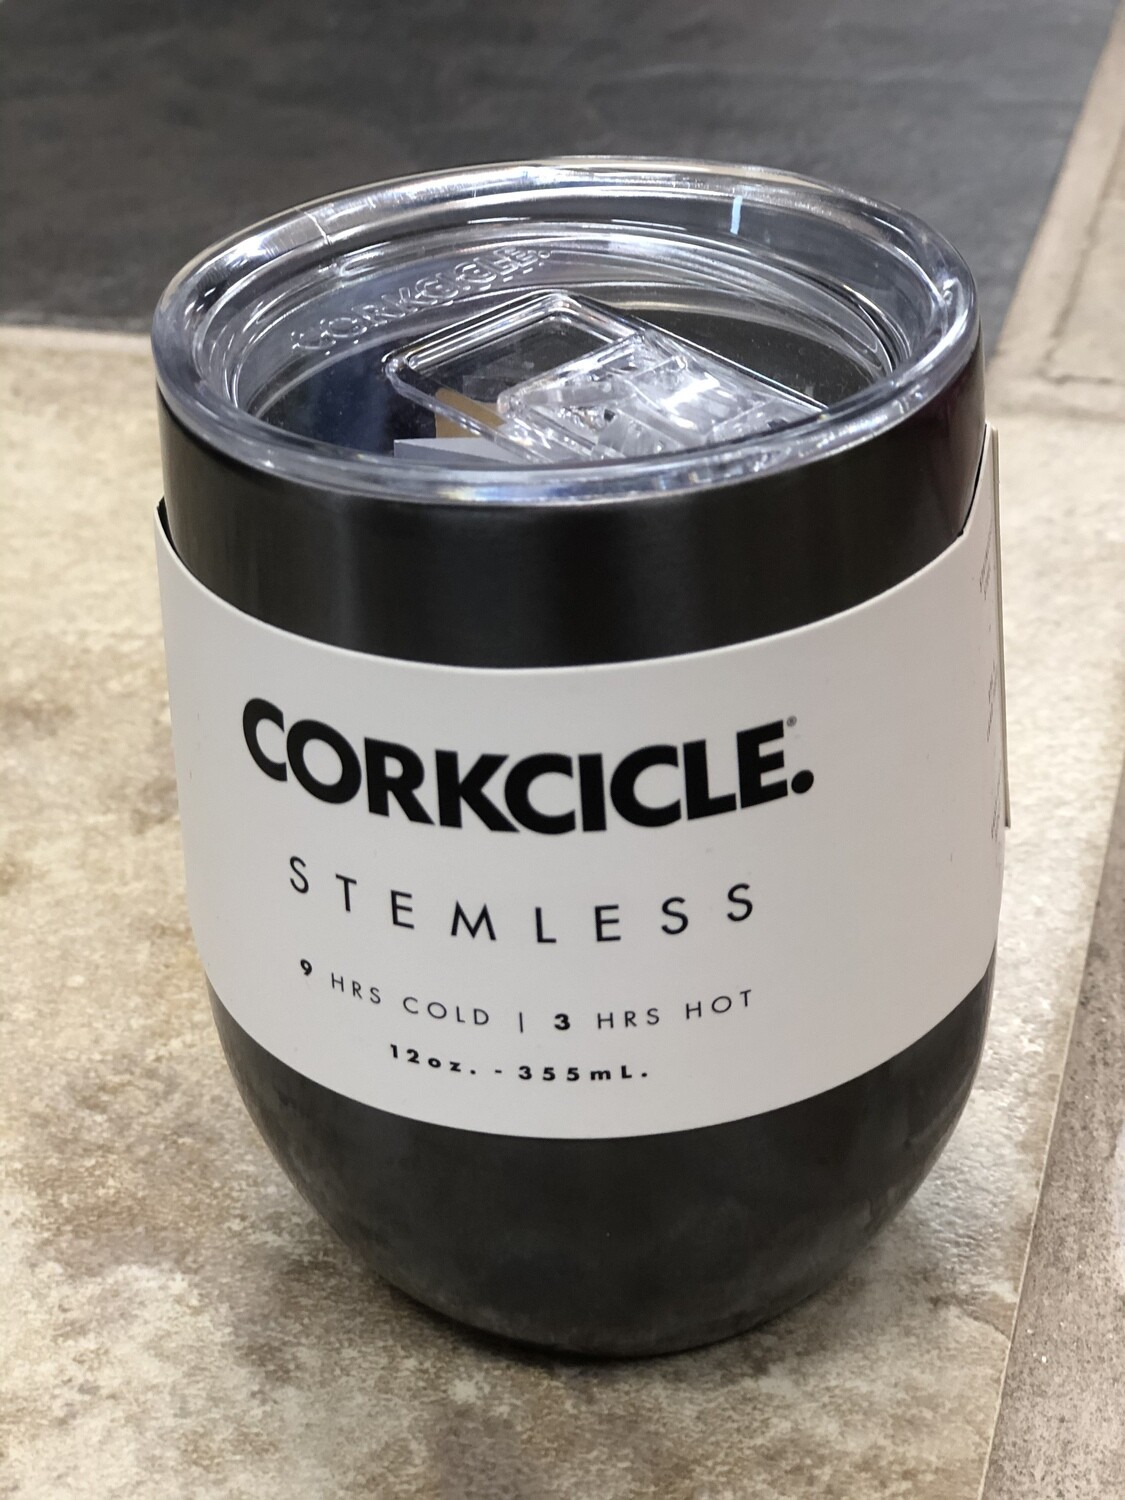 12 oz Gunmetal Corkcicle Stemless